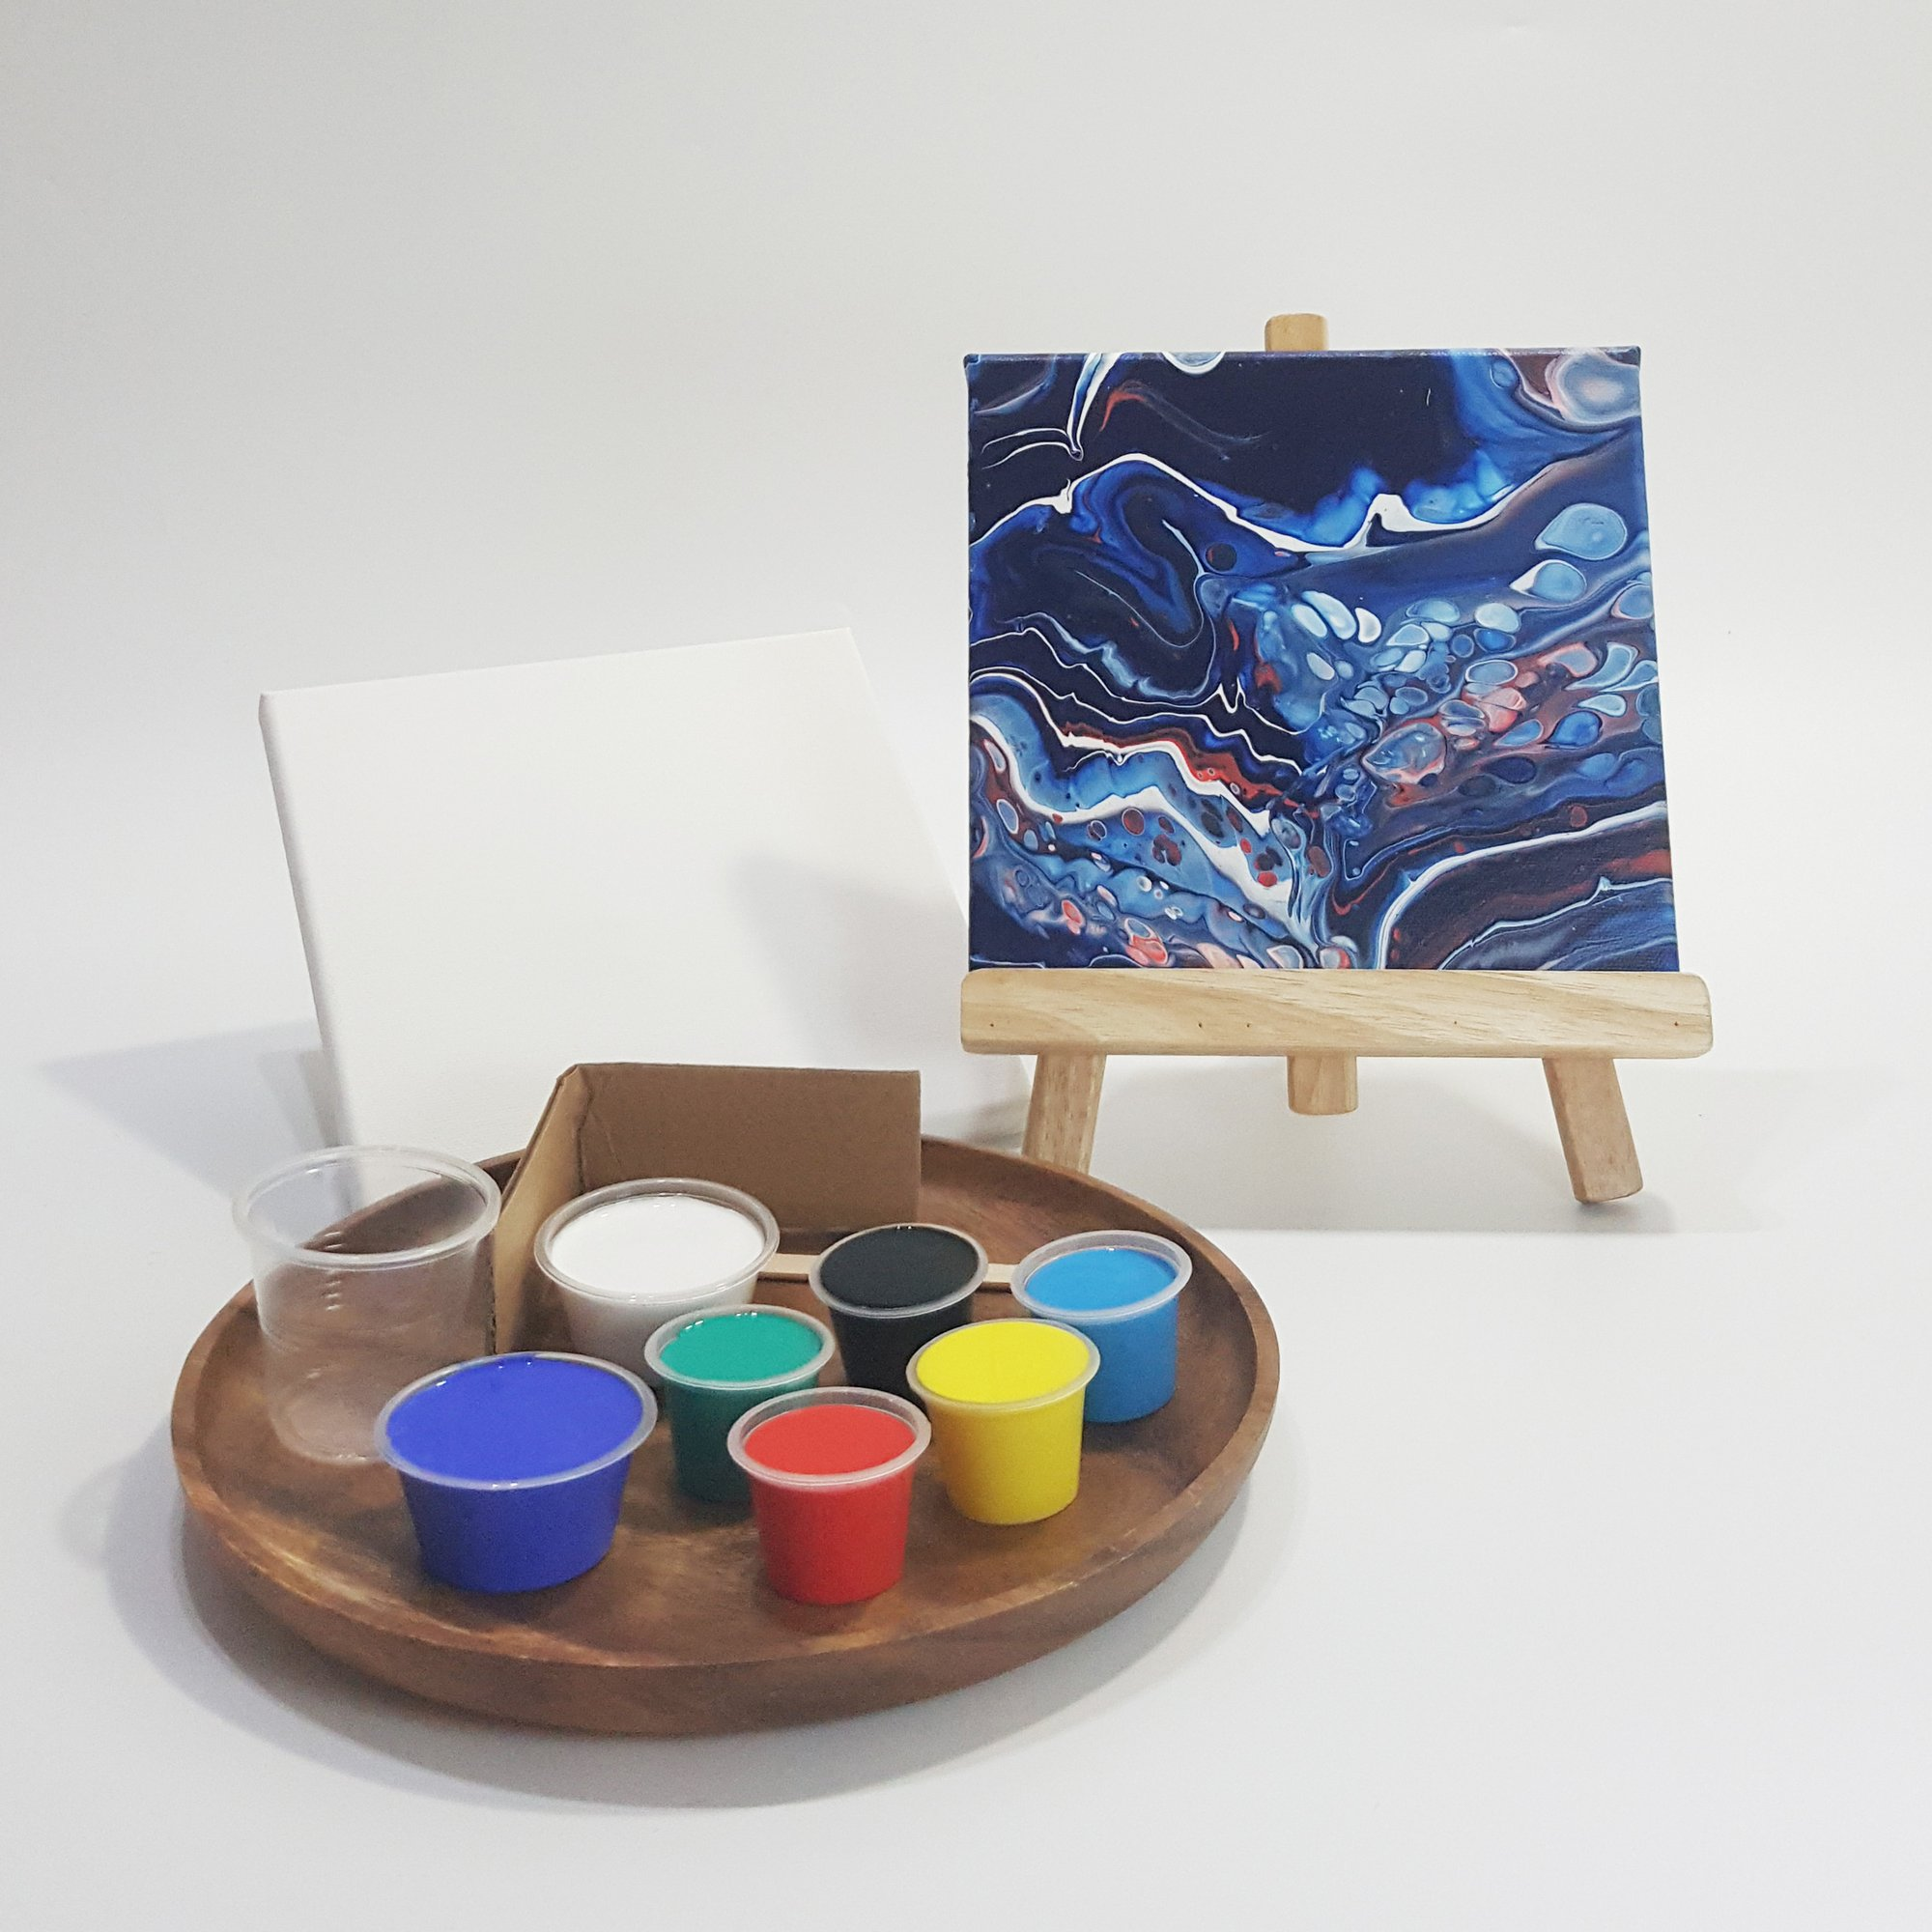 Make Your Own Acrylic Pour DIY Kit